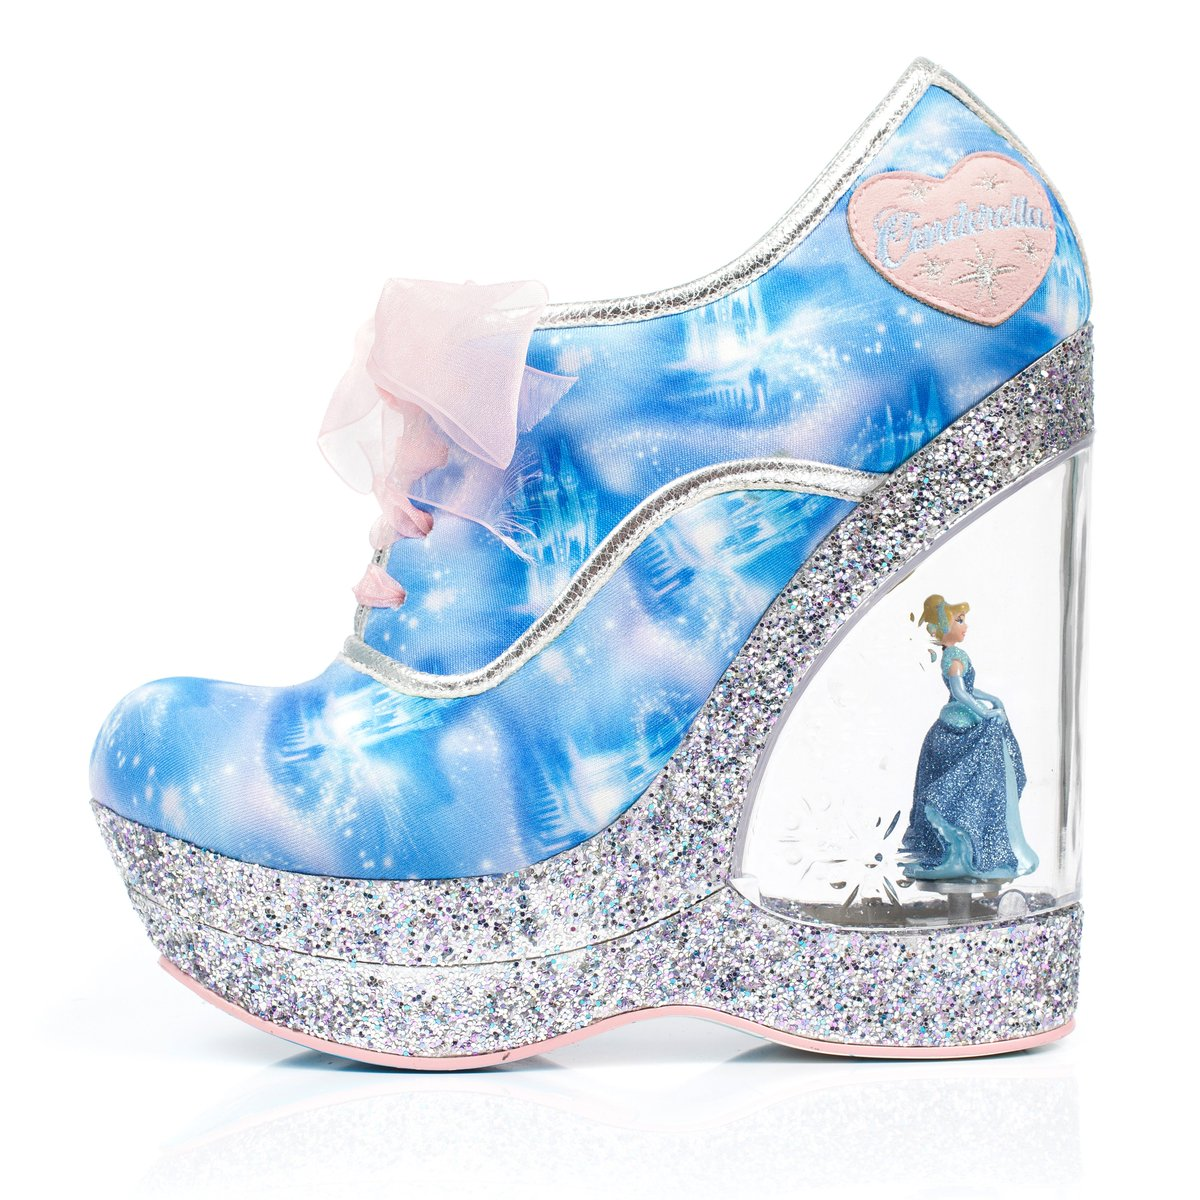 Our exclusive #Cinderella collections have arrived @TiltedSole_ https://t.co/vXxgPULtTC